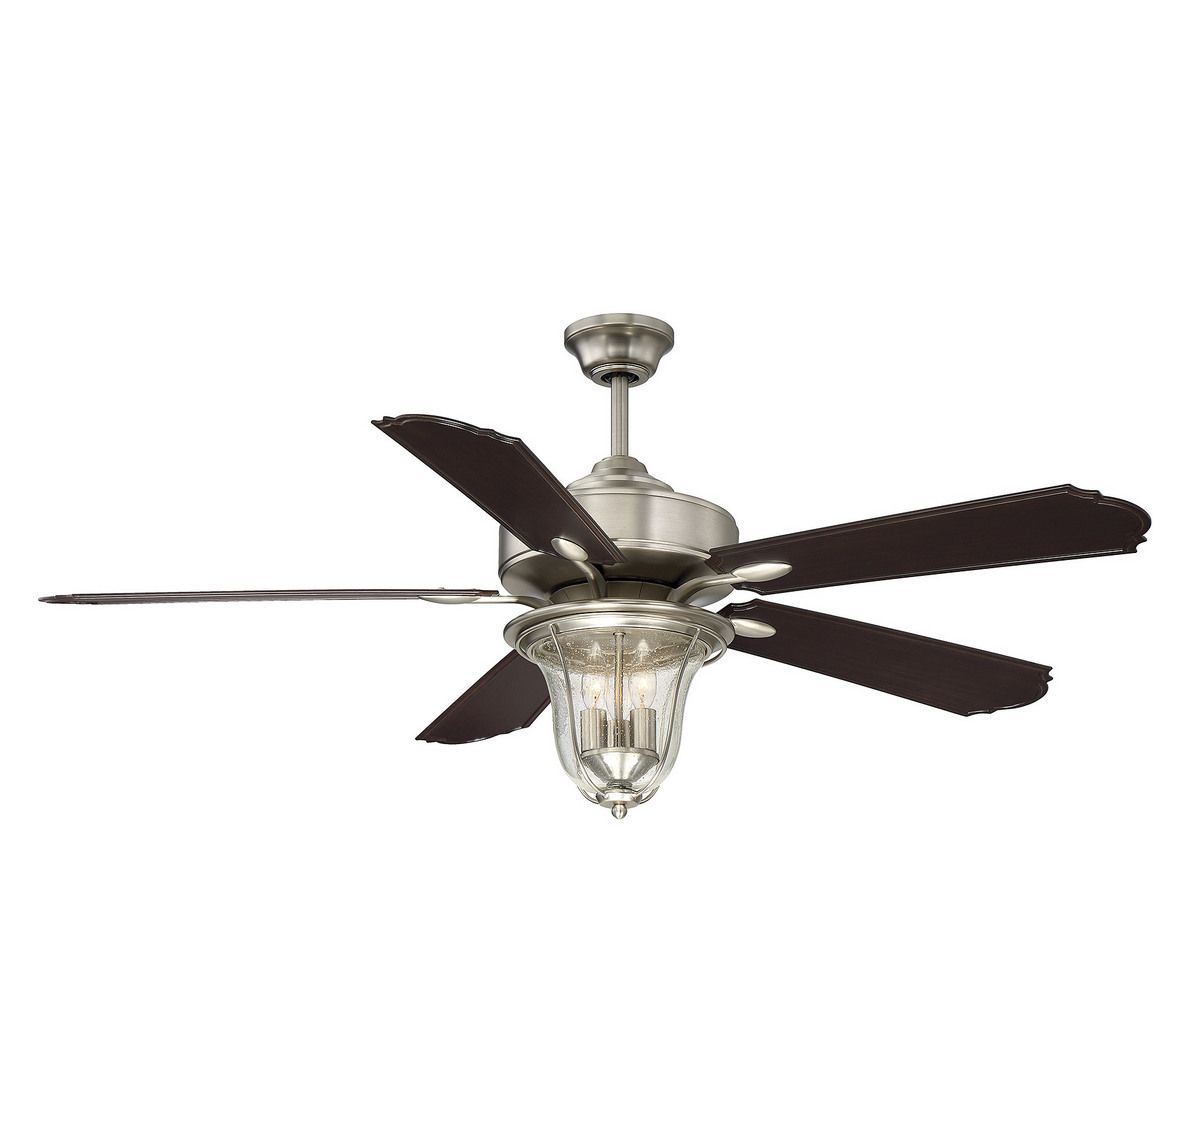 Rustic Ceiling Fan Light Fixtures Savoy House Trudy 52